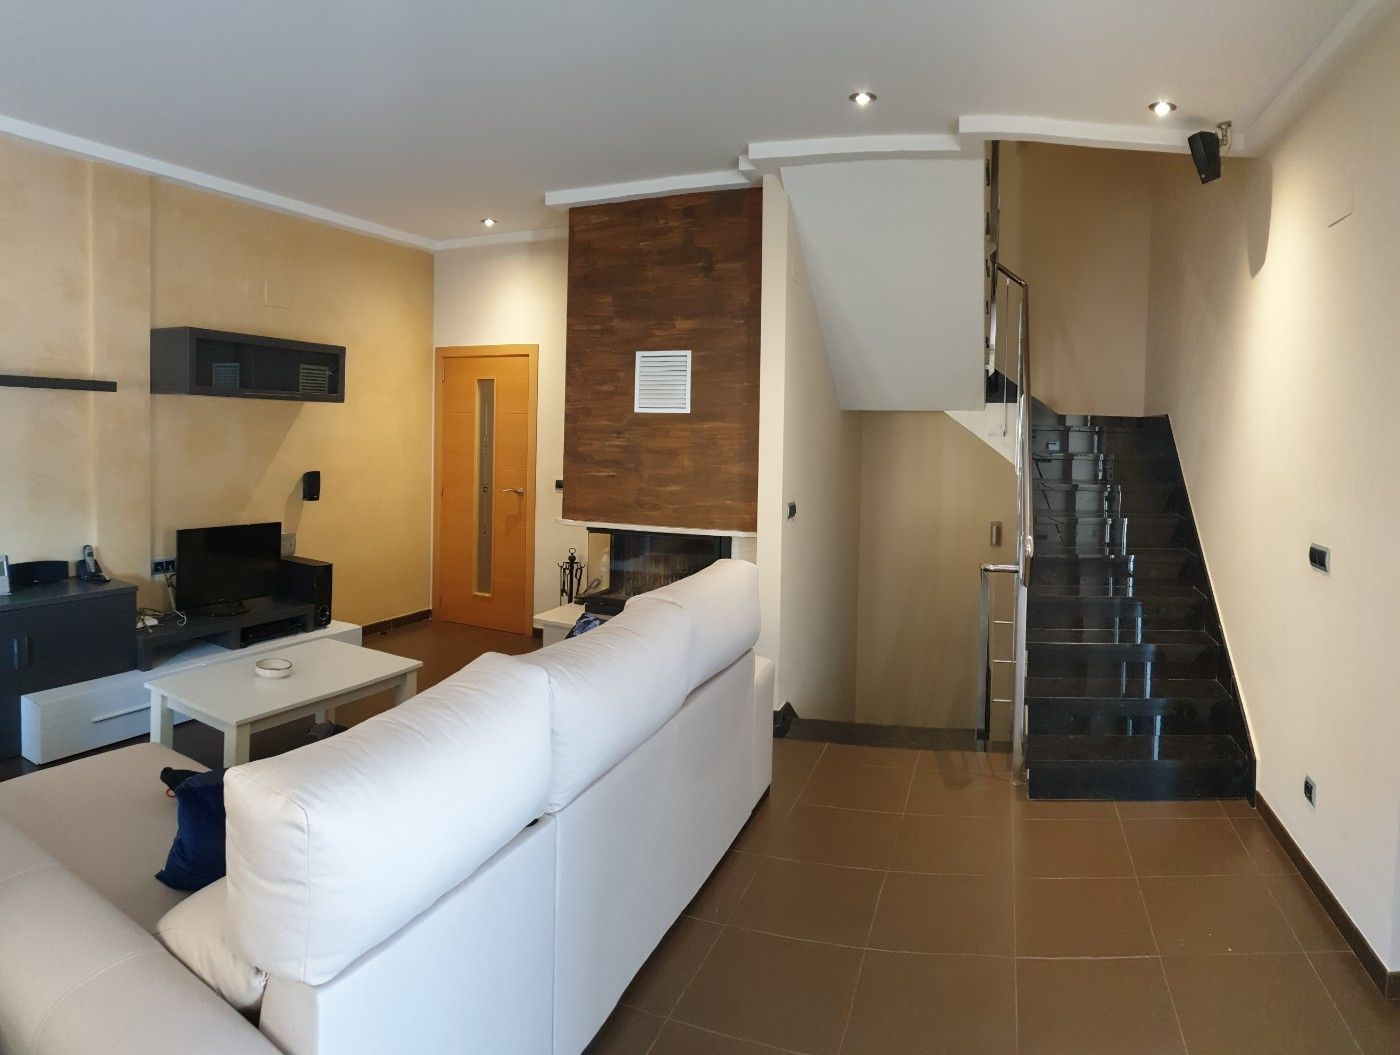 Semi detached house in Calle xeraco, 25. Adosado alto standing con vistas